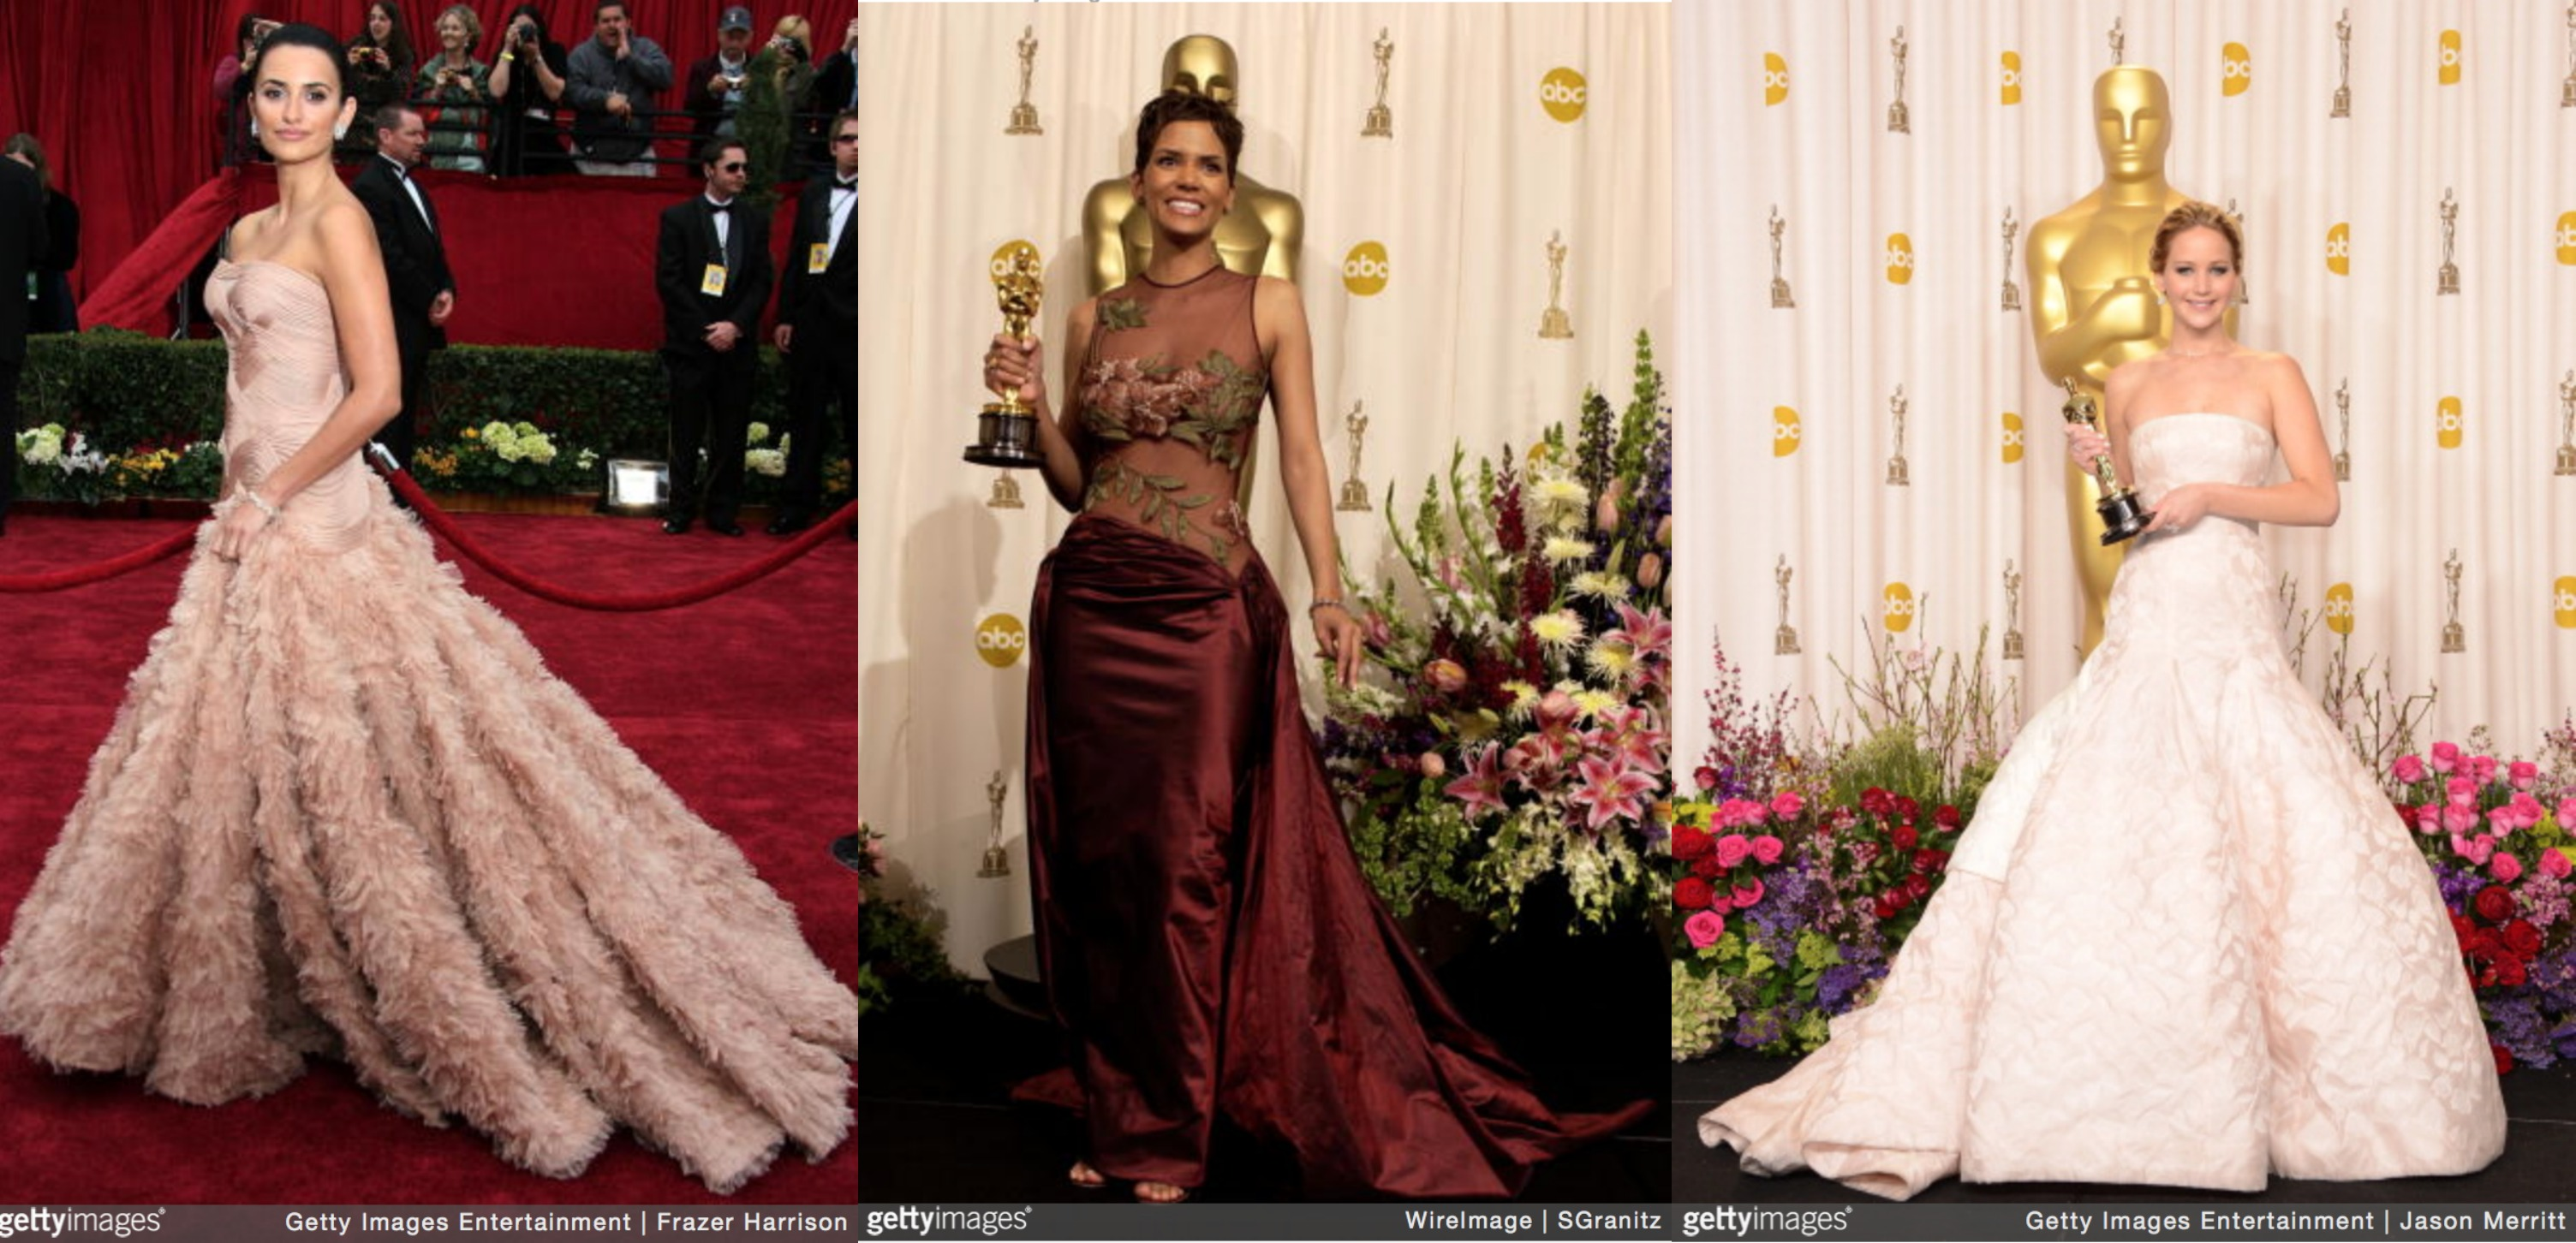 Memorable Red Carpet Moments from The Academy Awards